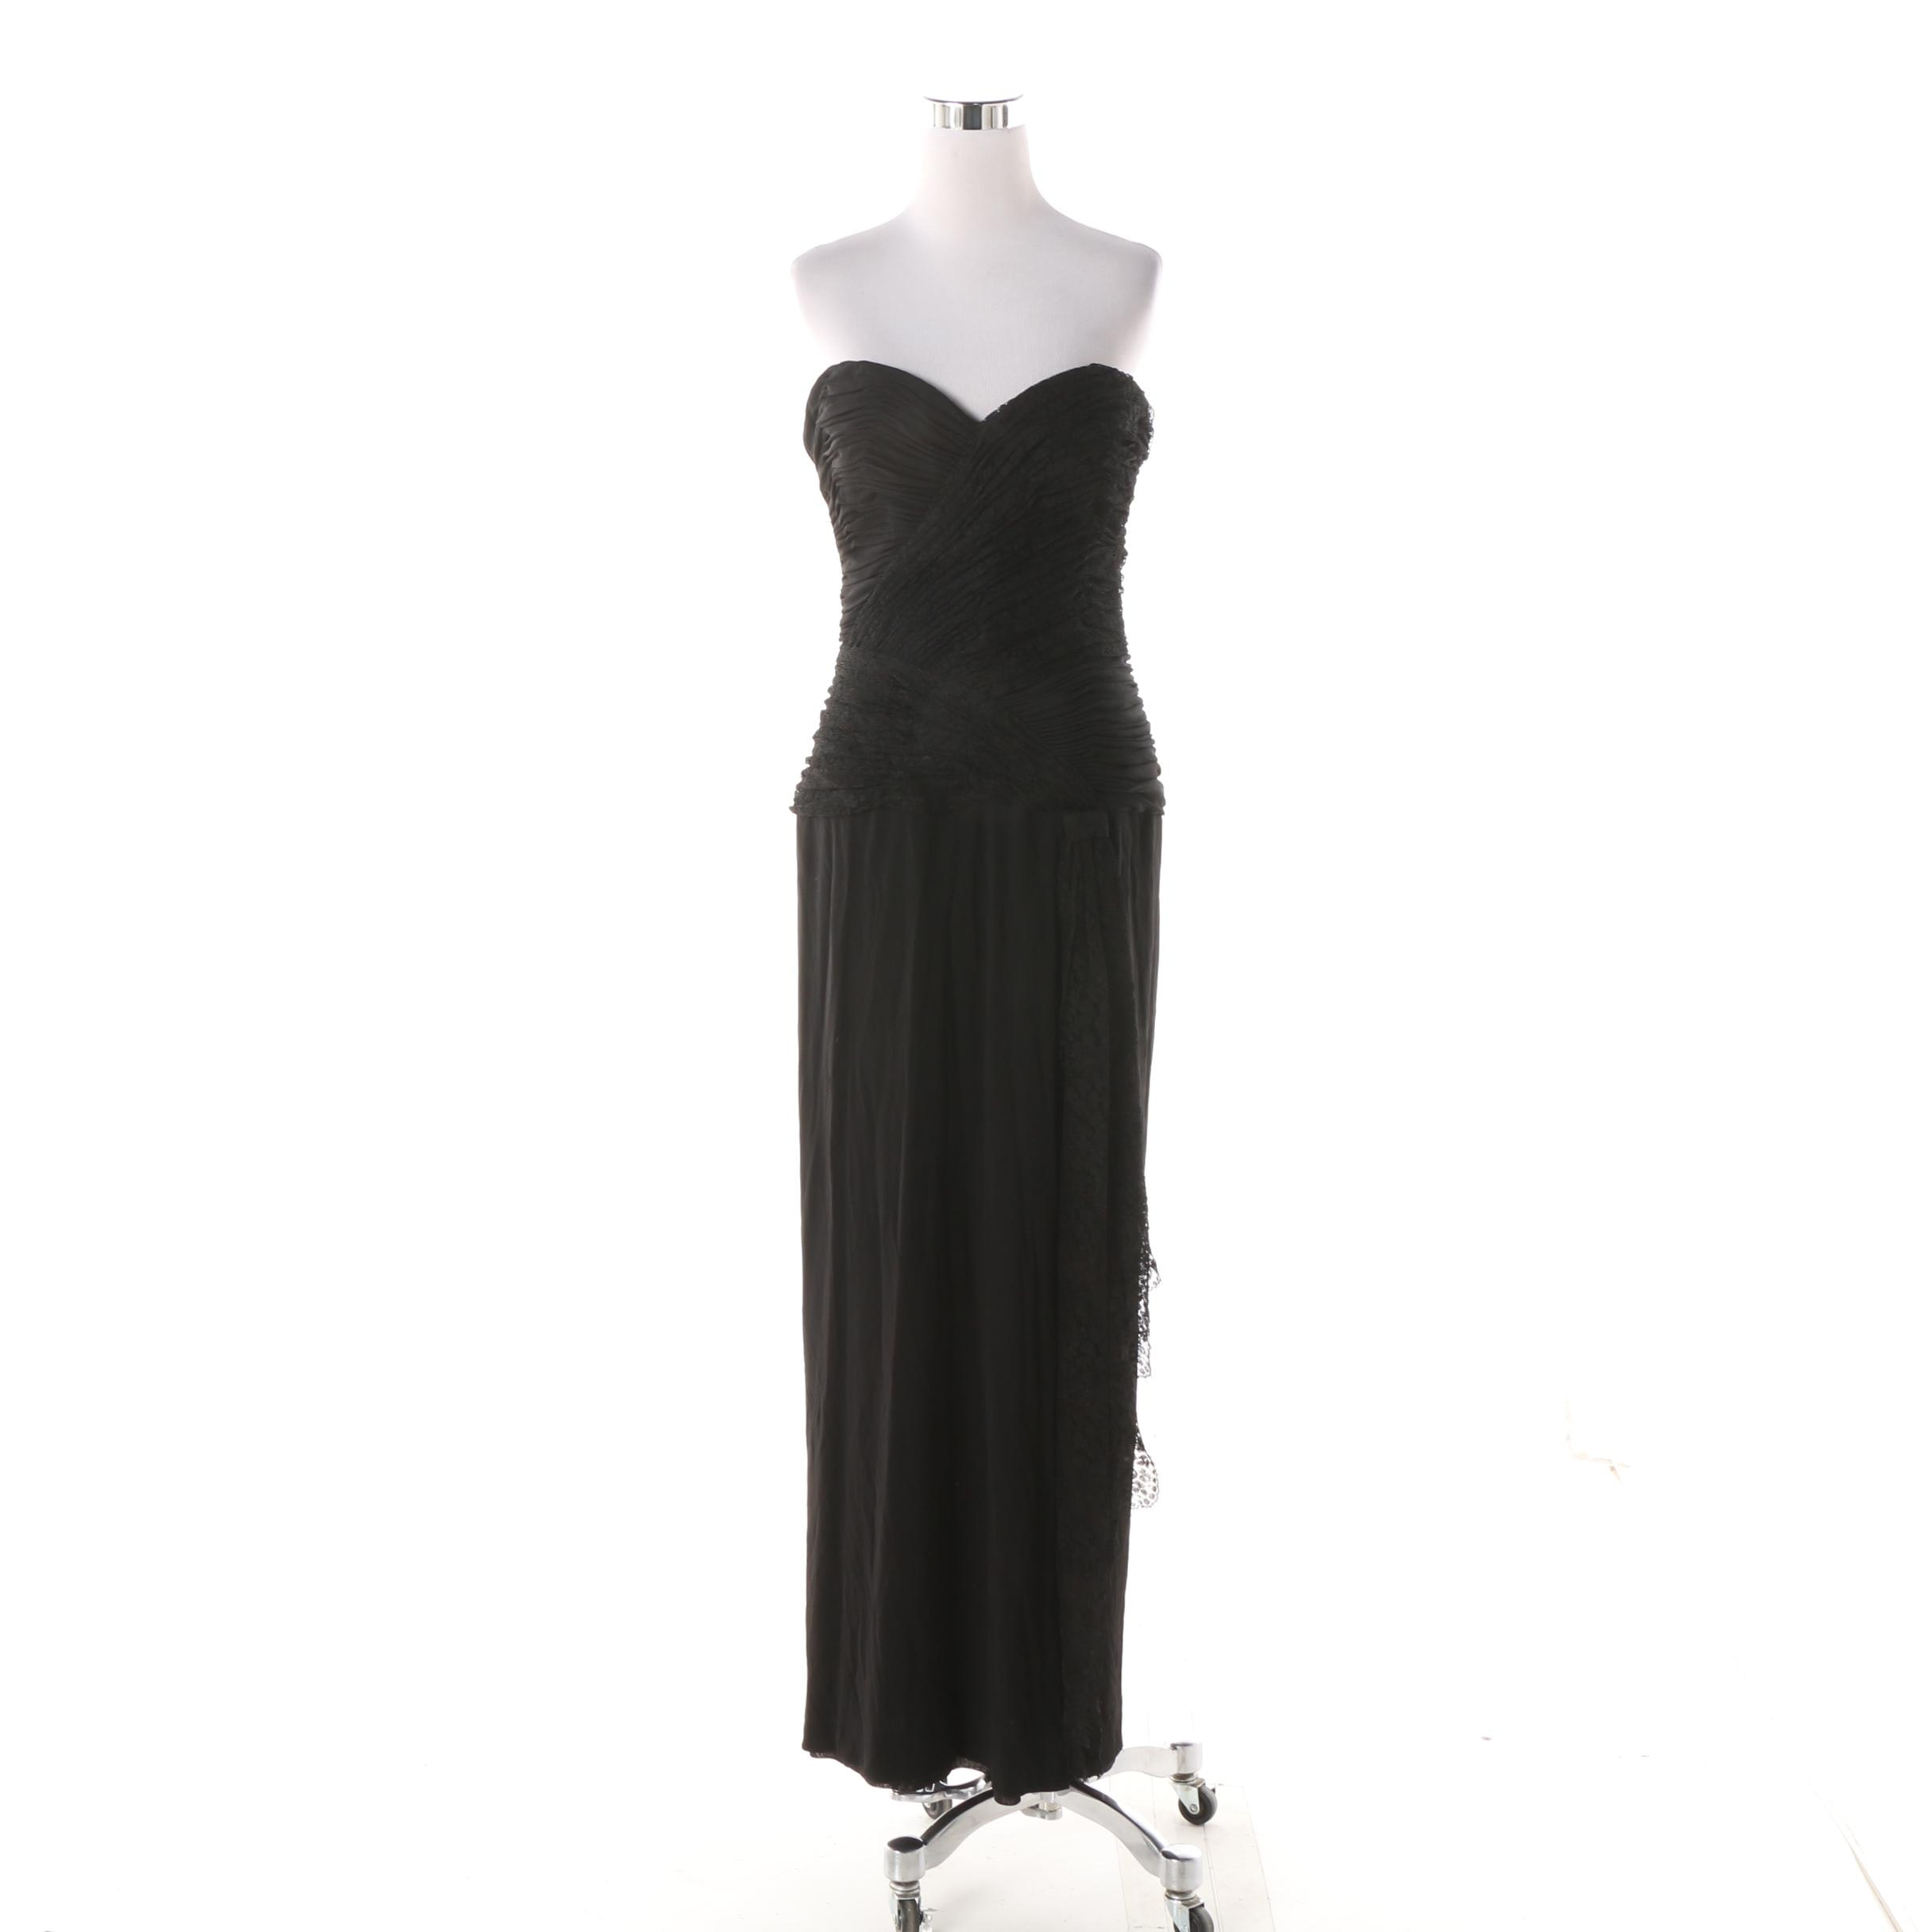 1980s Loris Azzaro Black Strapless Ruched Bodice Gown, Made in France